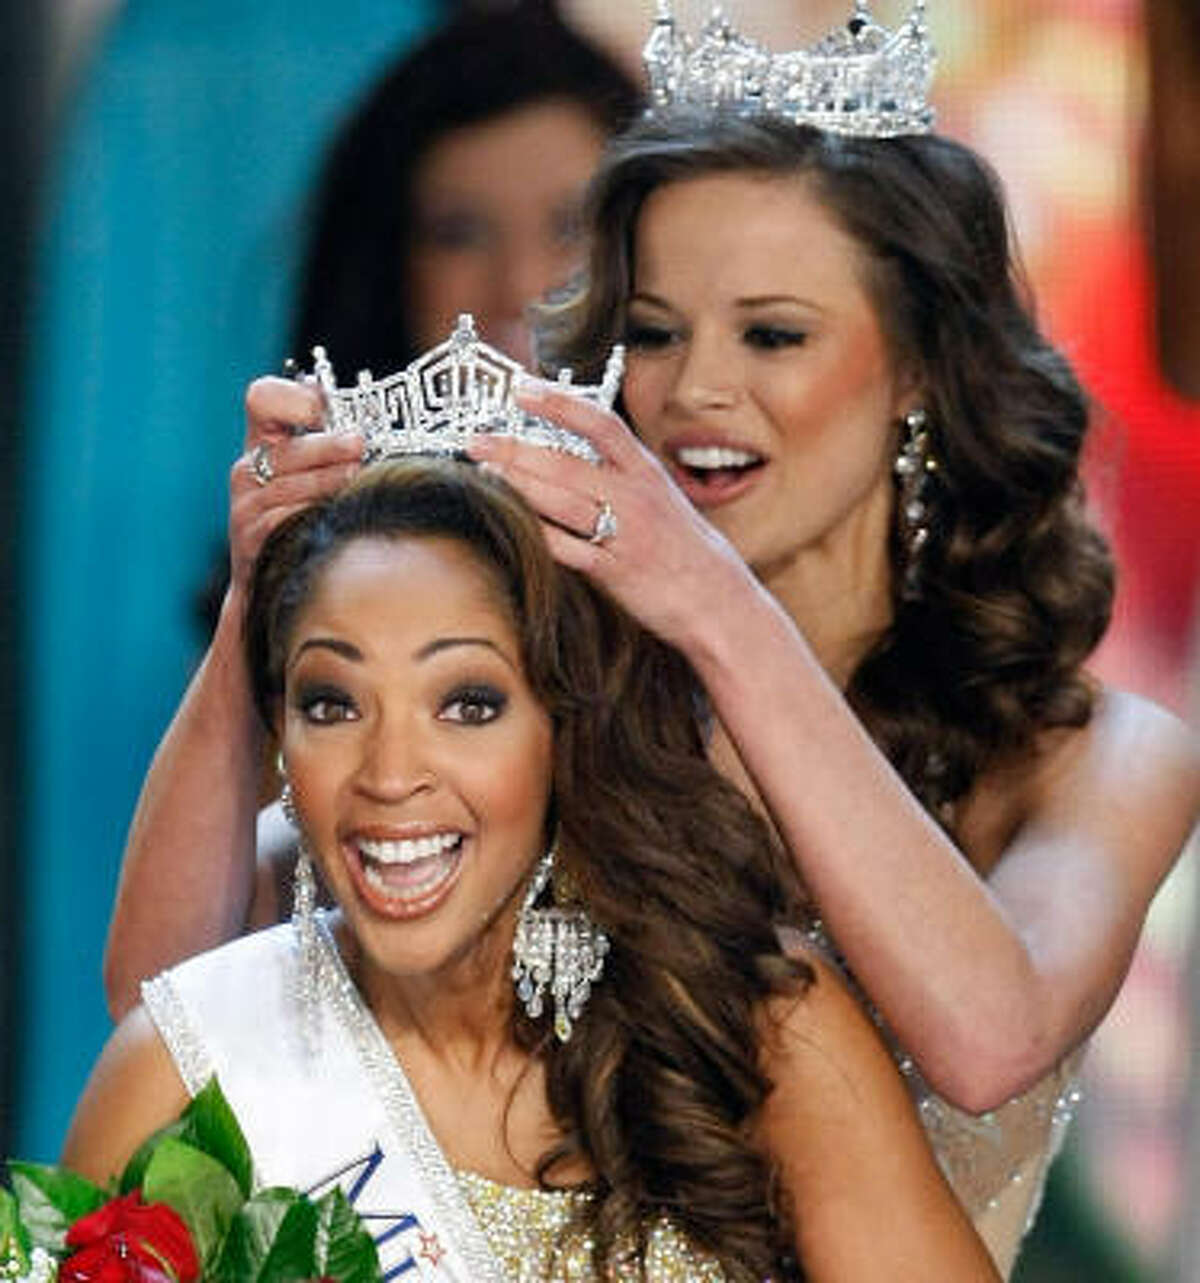 Miss America 2009 Katie Stam passes the crown to Virginia's Caressa Cameron in Las Vegas on Saturday.